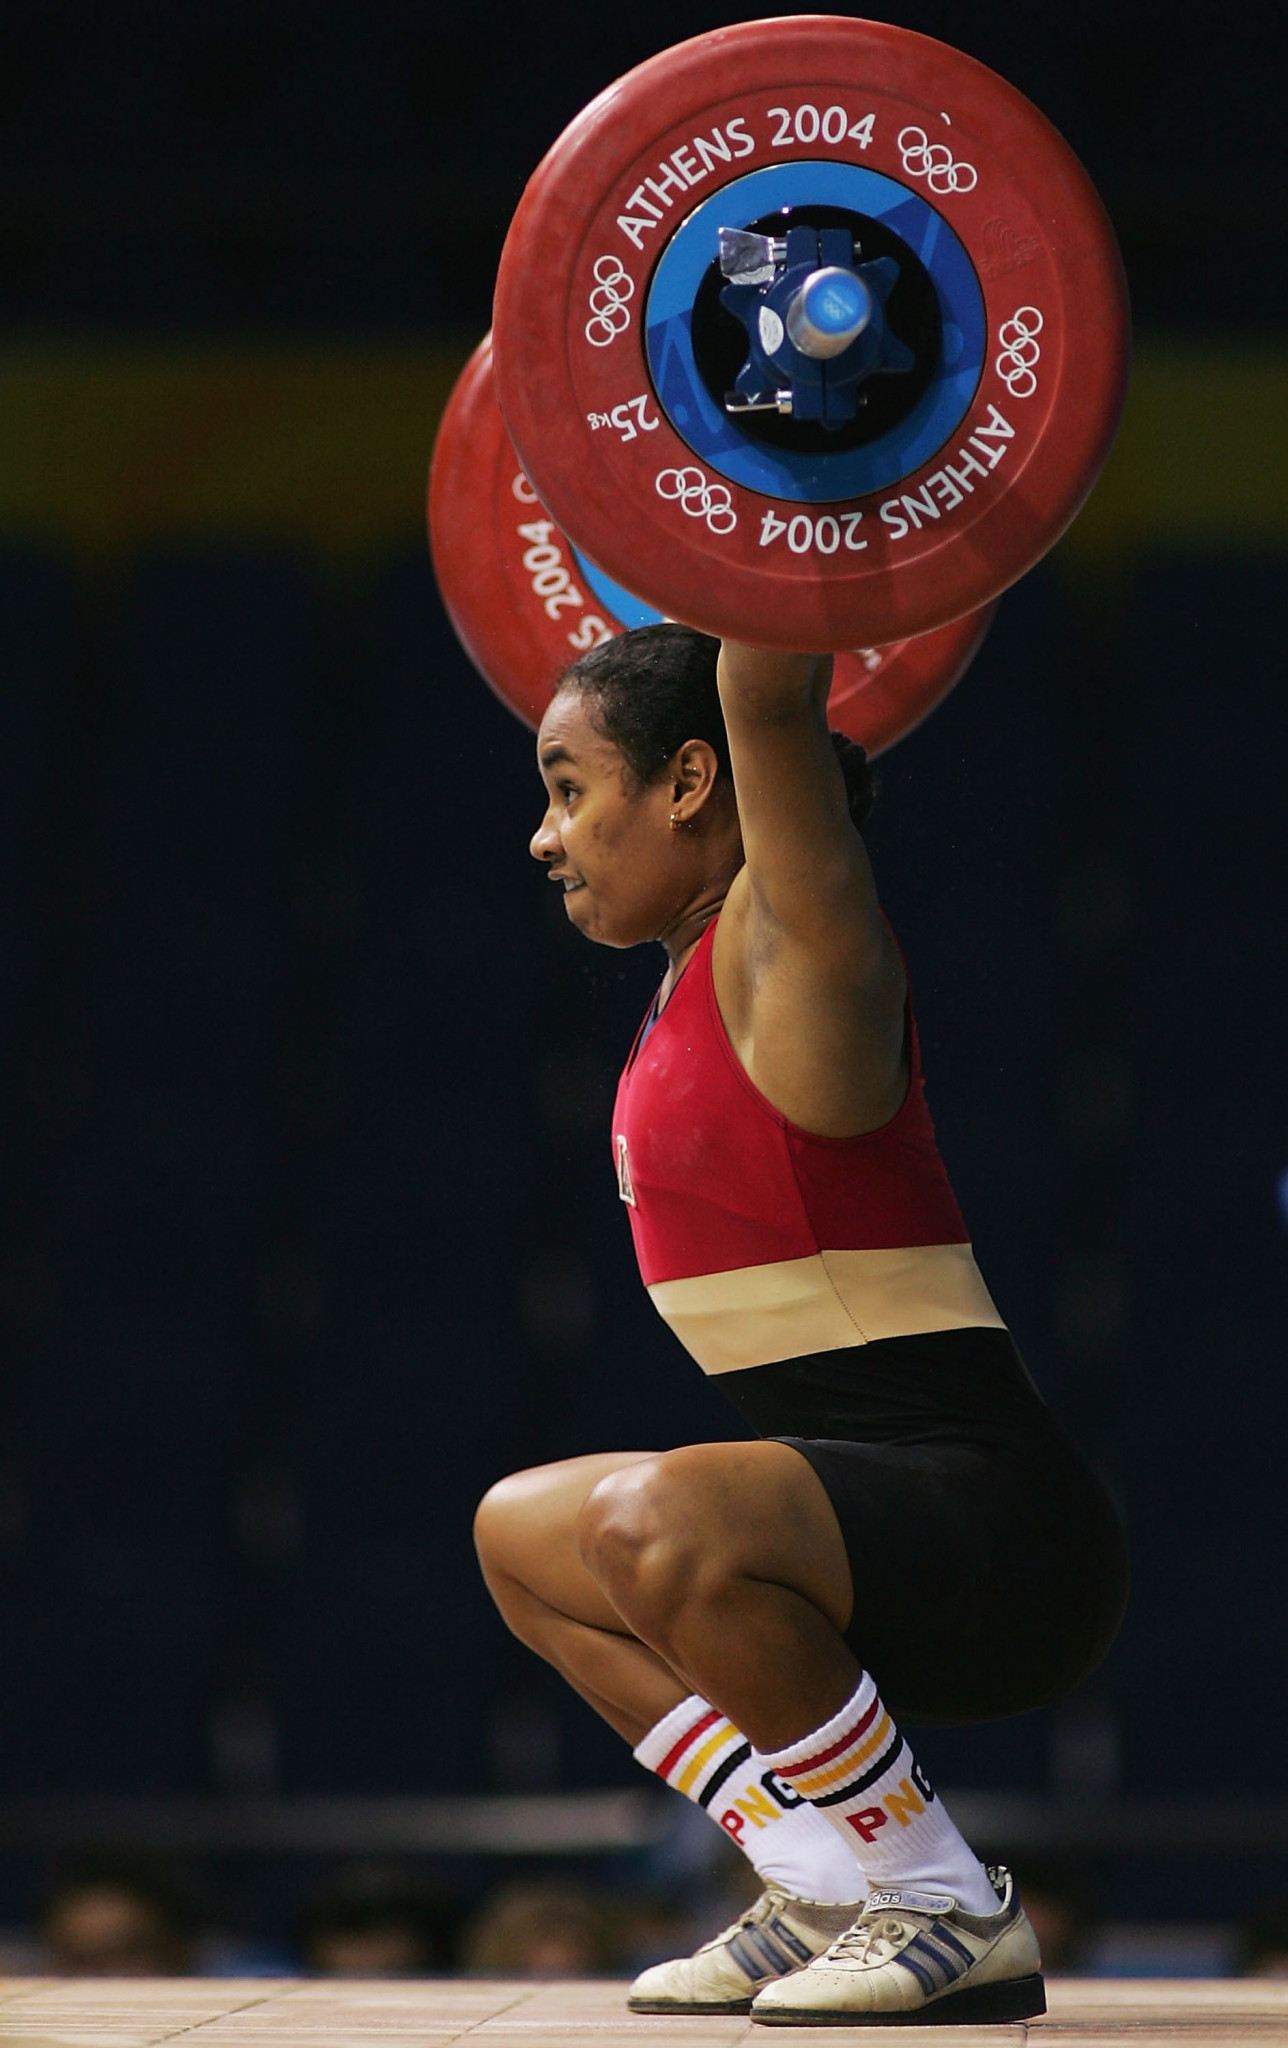 Papua New Guinea's Dika Toua, the first woman to lift in an Olympic weightlifting competition, is set to make her fifth appearance at Tokyo 2020 ©Getty Images